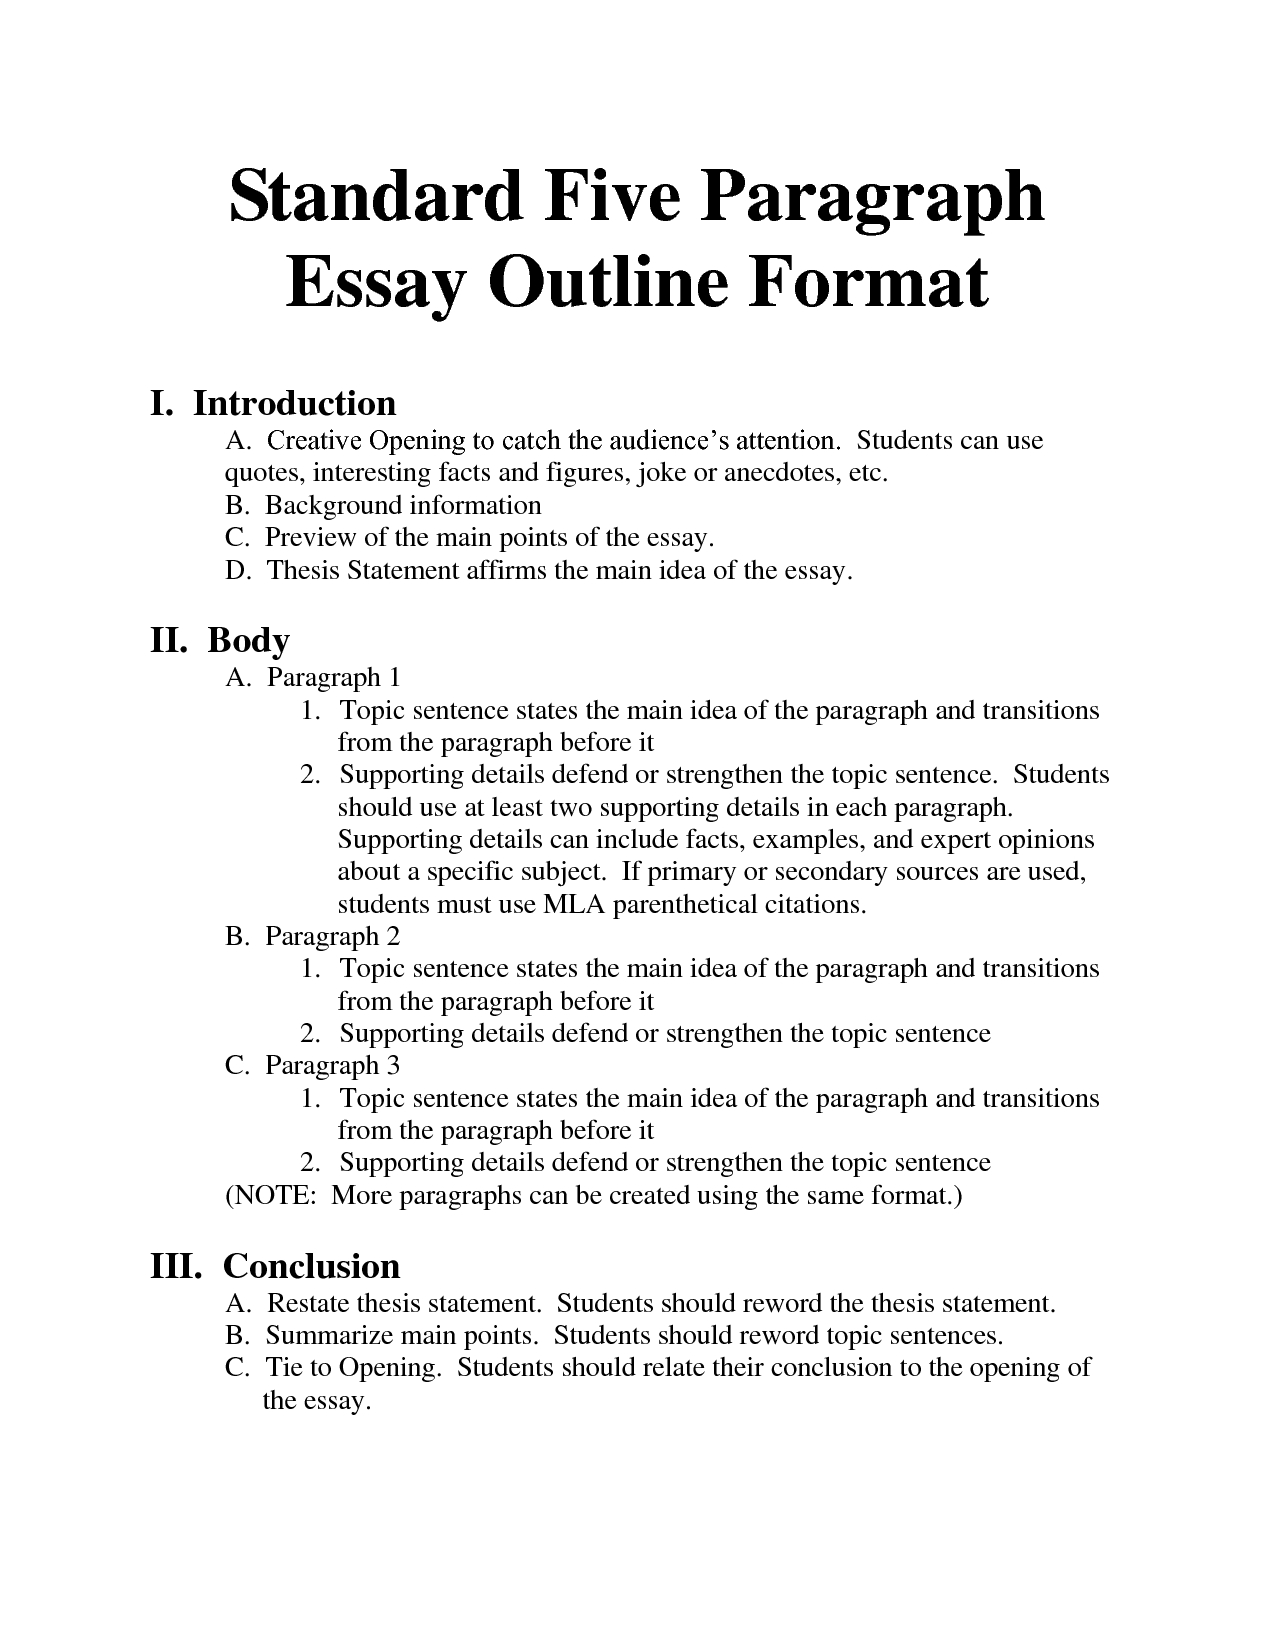 Standard Essay Format - Bing Images | Essays Homeschool intended for Essay Writing Format 23266